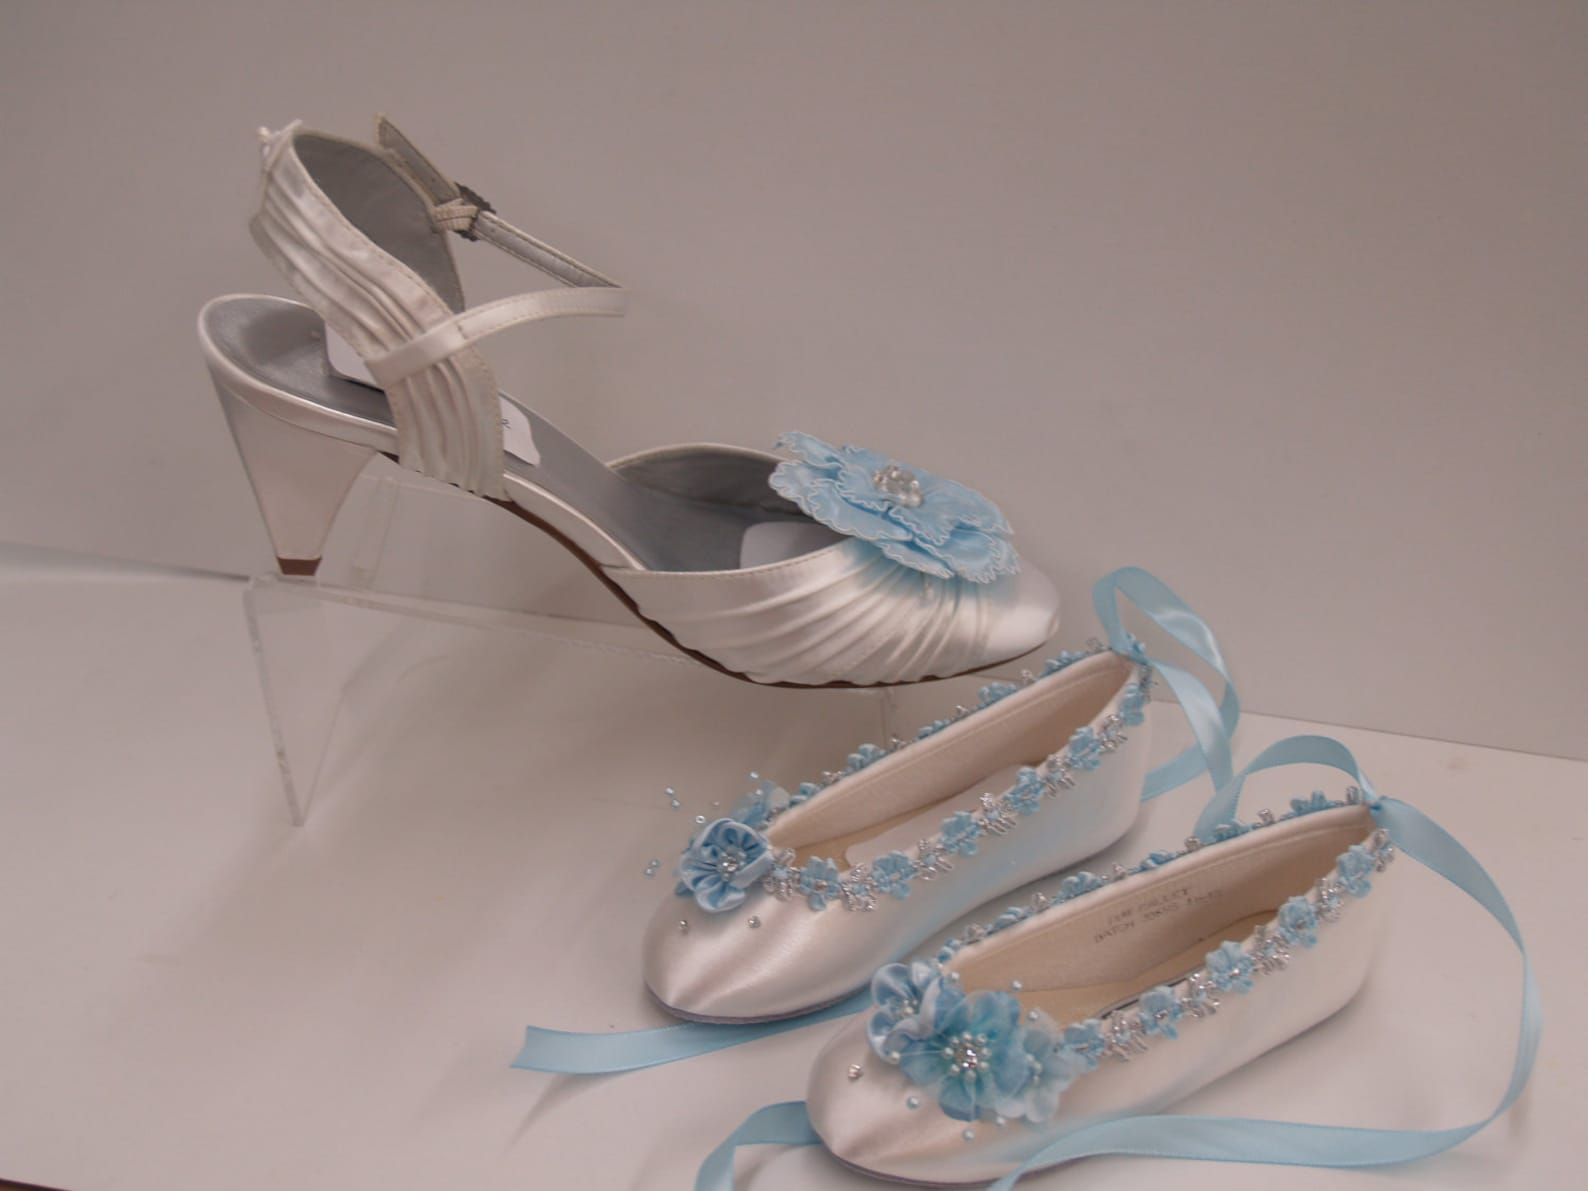 size 7 1/2 flower girl ballet style slipper blue white silver ready to ship,girls shoes,lace up ribbon,ballet style flats,light